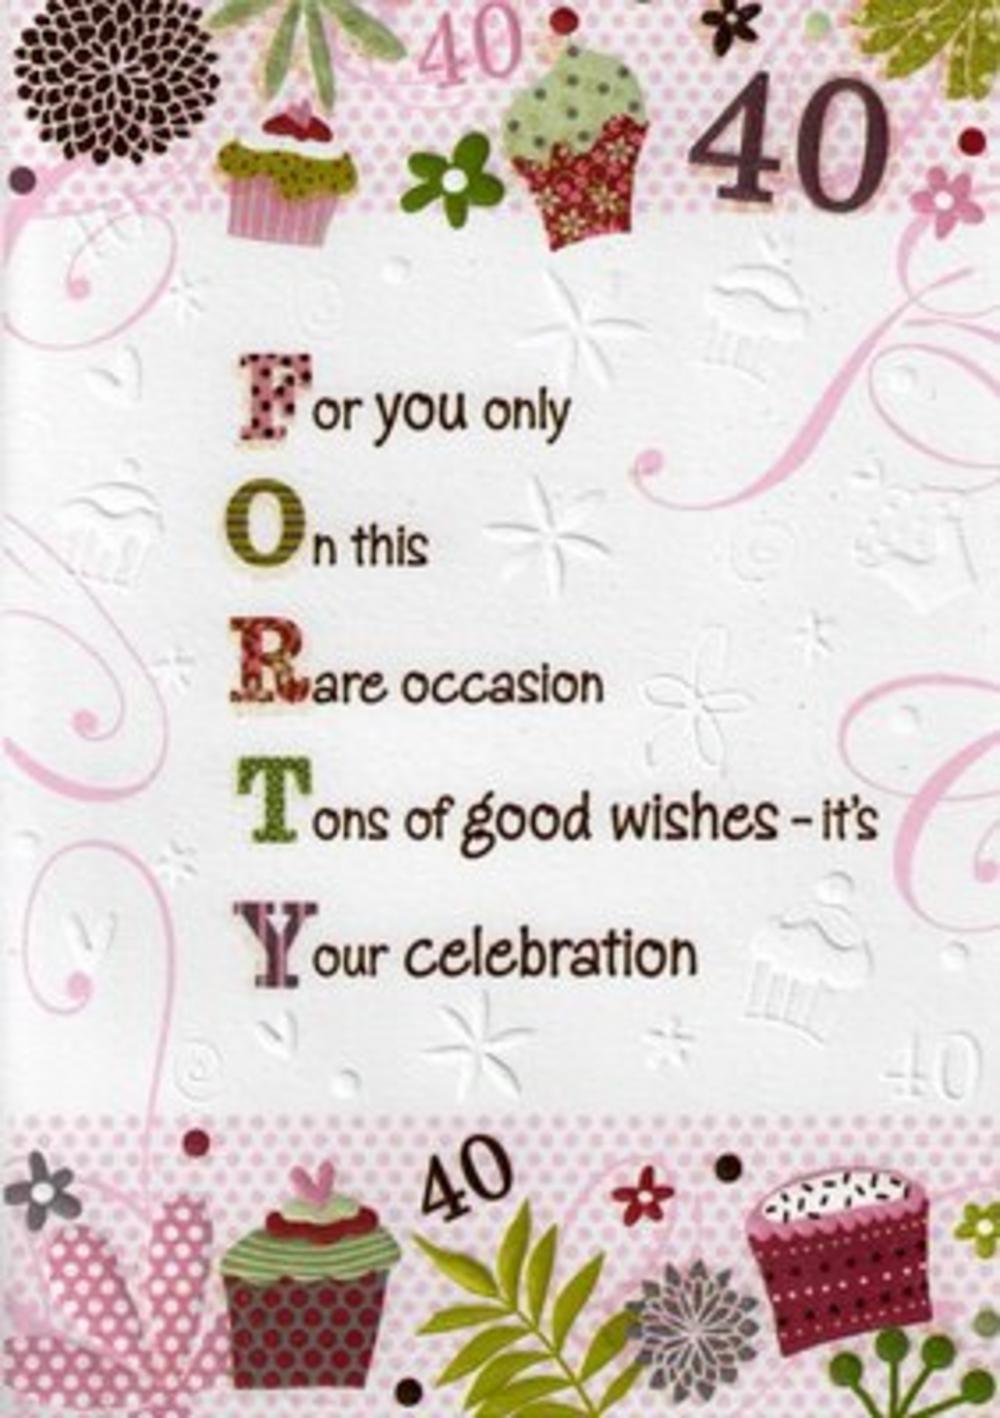 greeting card messages for 40th birthday ; lrgscale6025_1